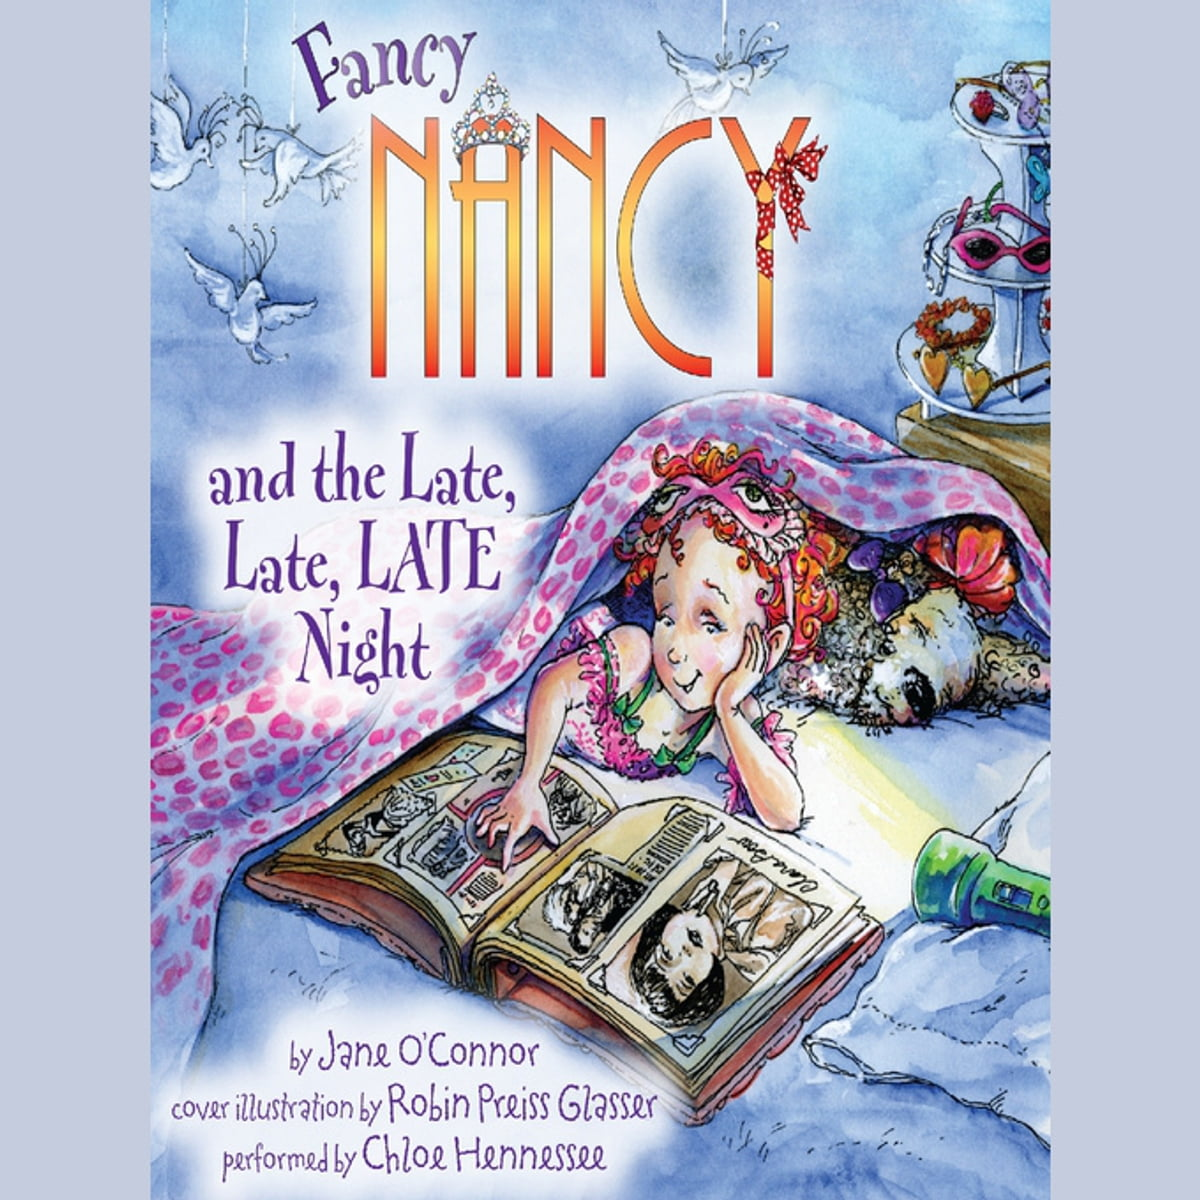 Fancy Nancy and the Late, Late, LATE Night Audiobook by Jane O'Connor -  9780062213334 | Rakuten Kobo